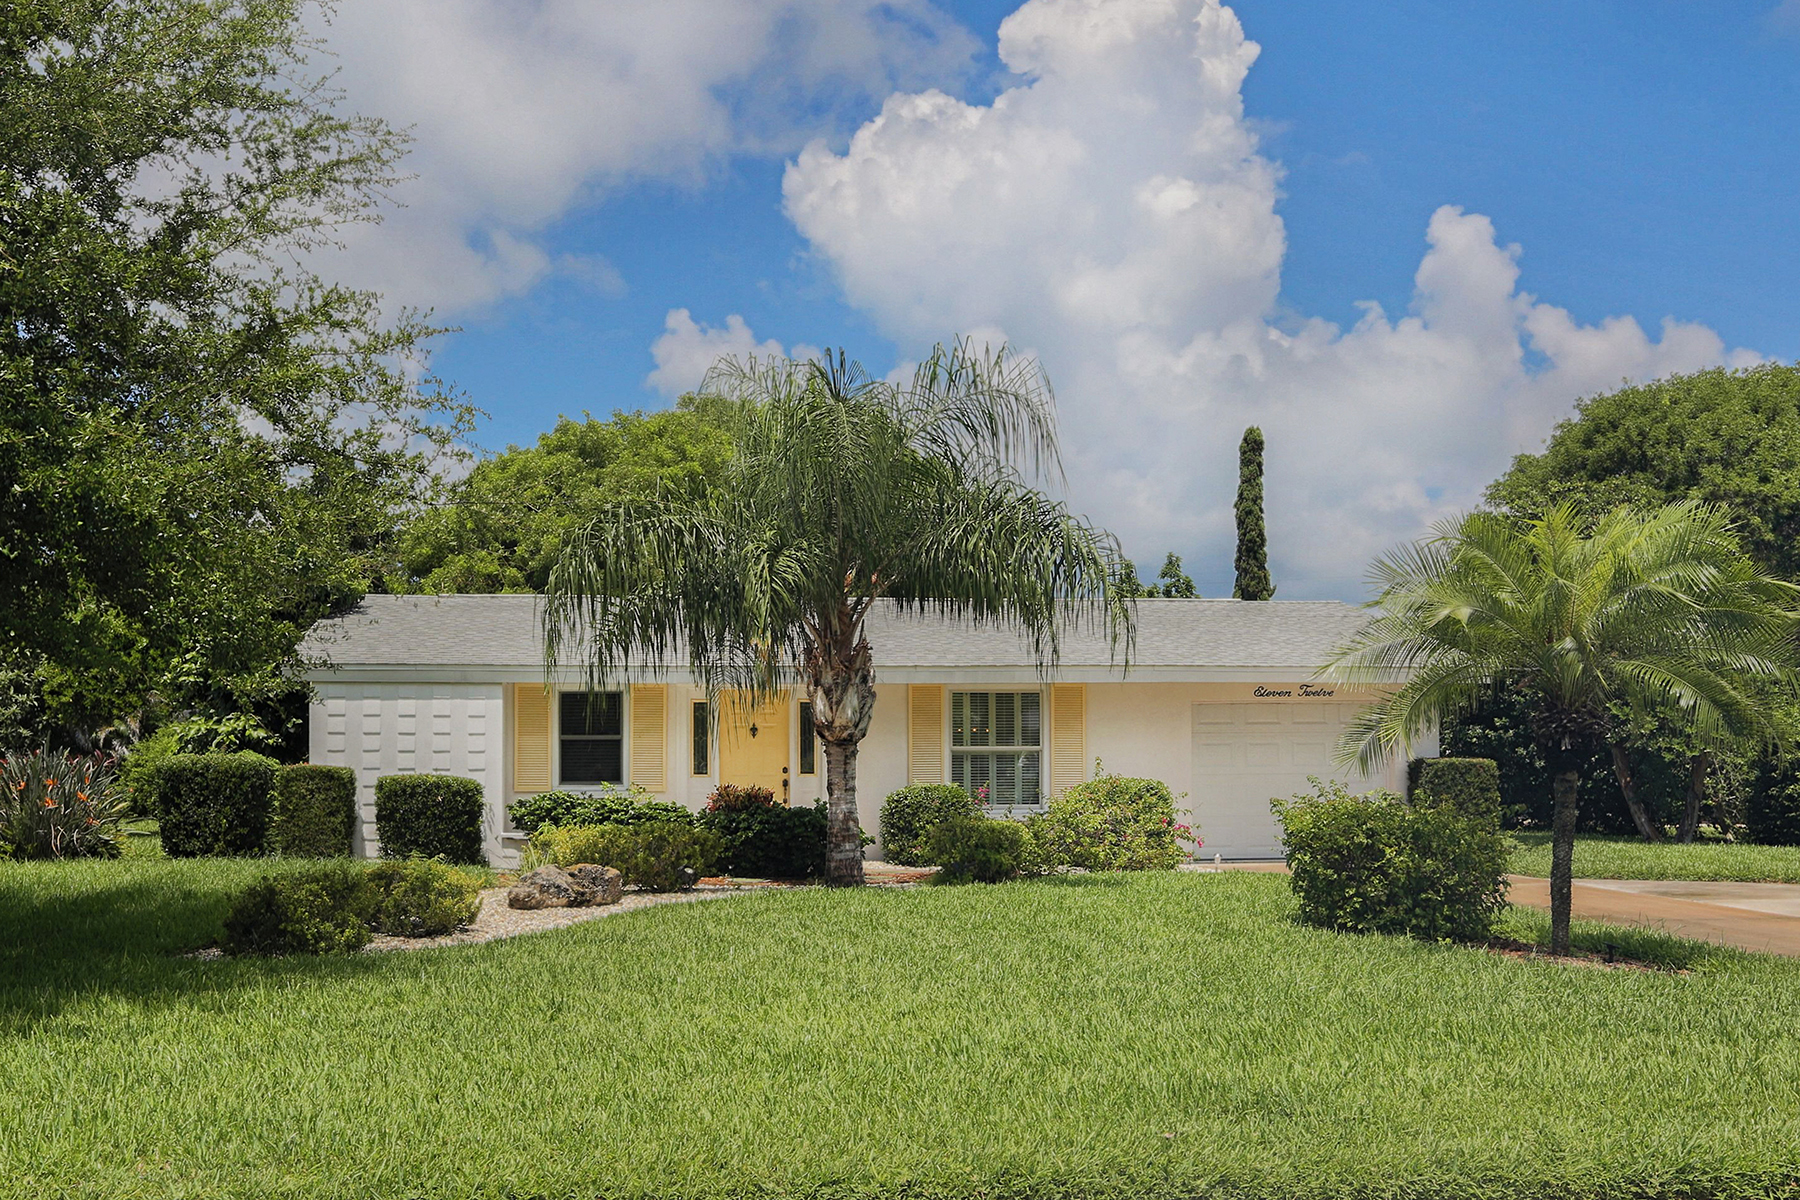 Single Family Home for Sale at VENICE ISLAND 1112 SE Riviera St Venice, Florida 34285 United States